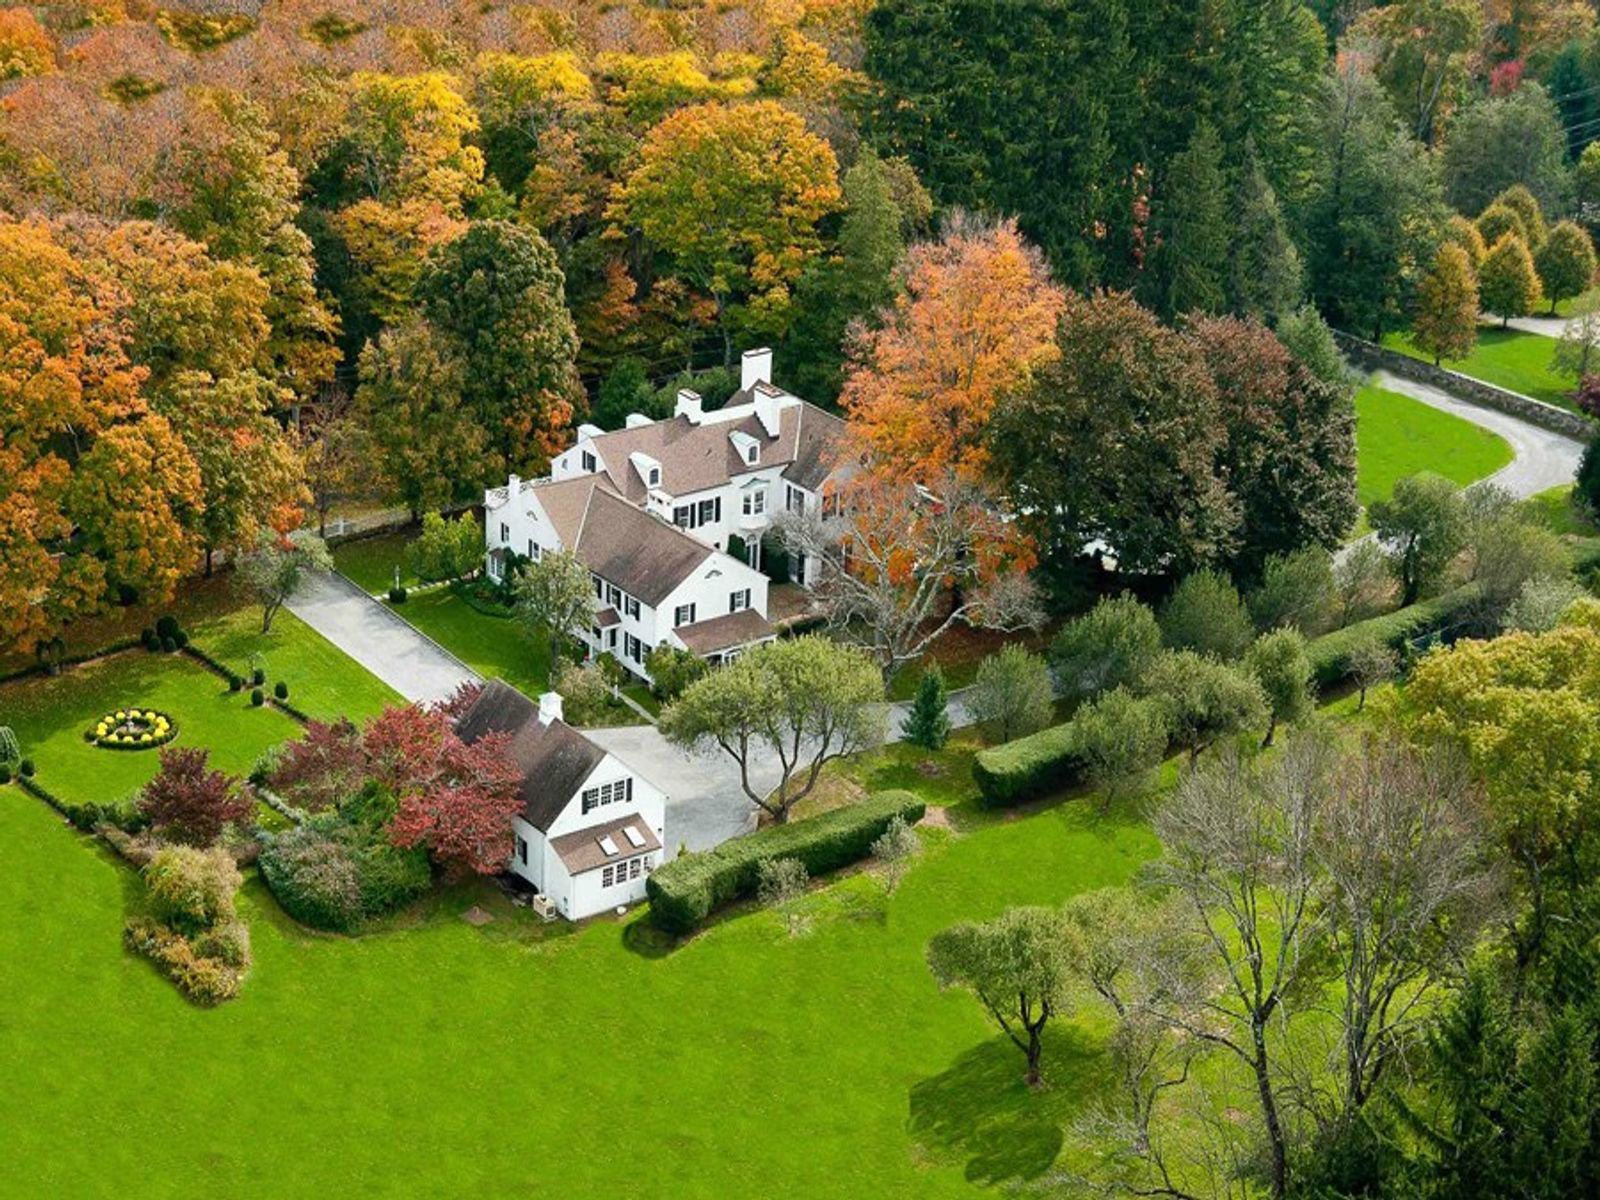 Classic Country Estate, Greenwich CT Single Family Home - Greenwich Real Estate